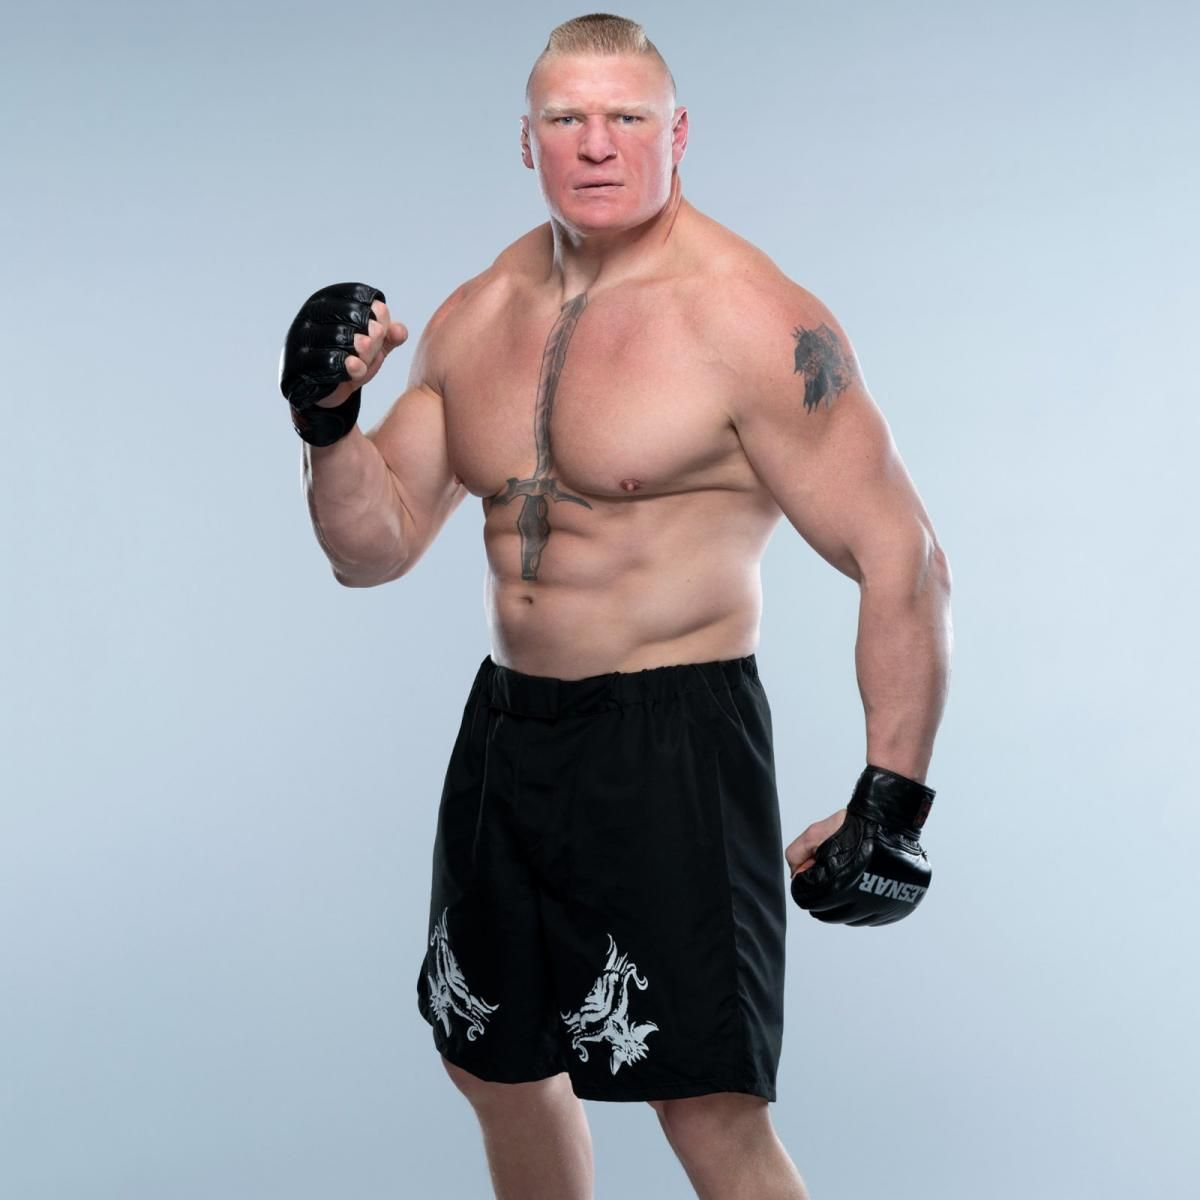 Brock Lesnar S First Wwe Photo Shoot In More Than Two Years Brock Lesnar Brock Lesnar Wwe Wrestling Superstars